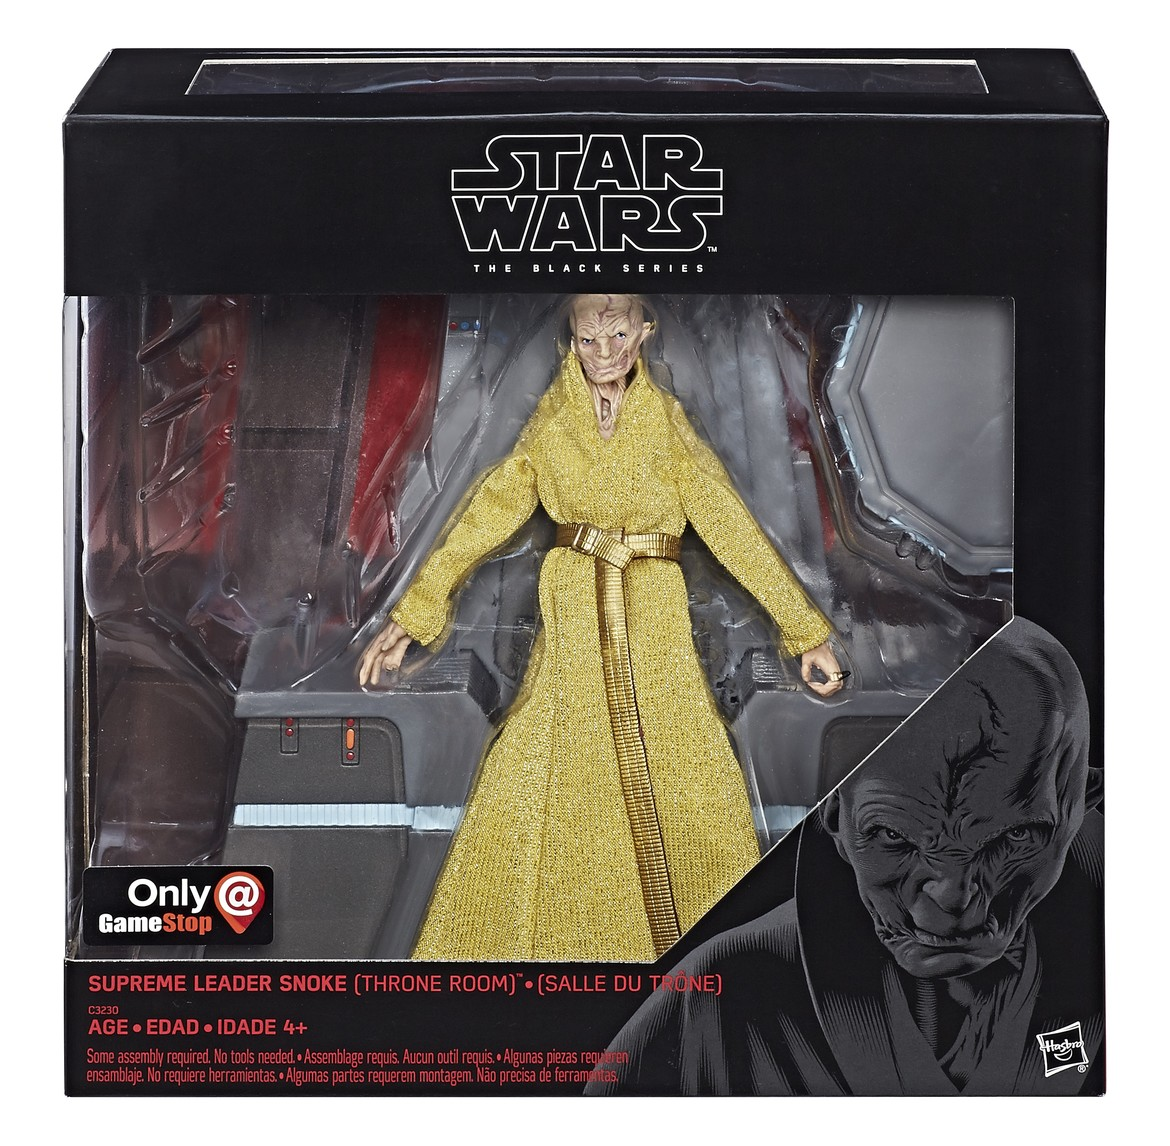 Star Wars The Black Series 6-Inch Supreme Leader Snoke Figure and Throne - in pkg.jpeg